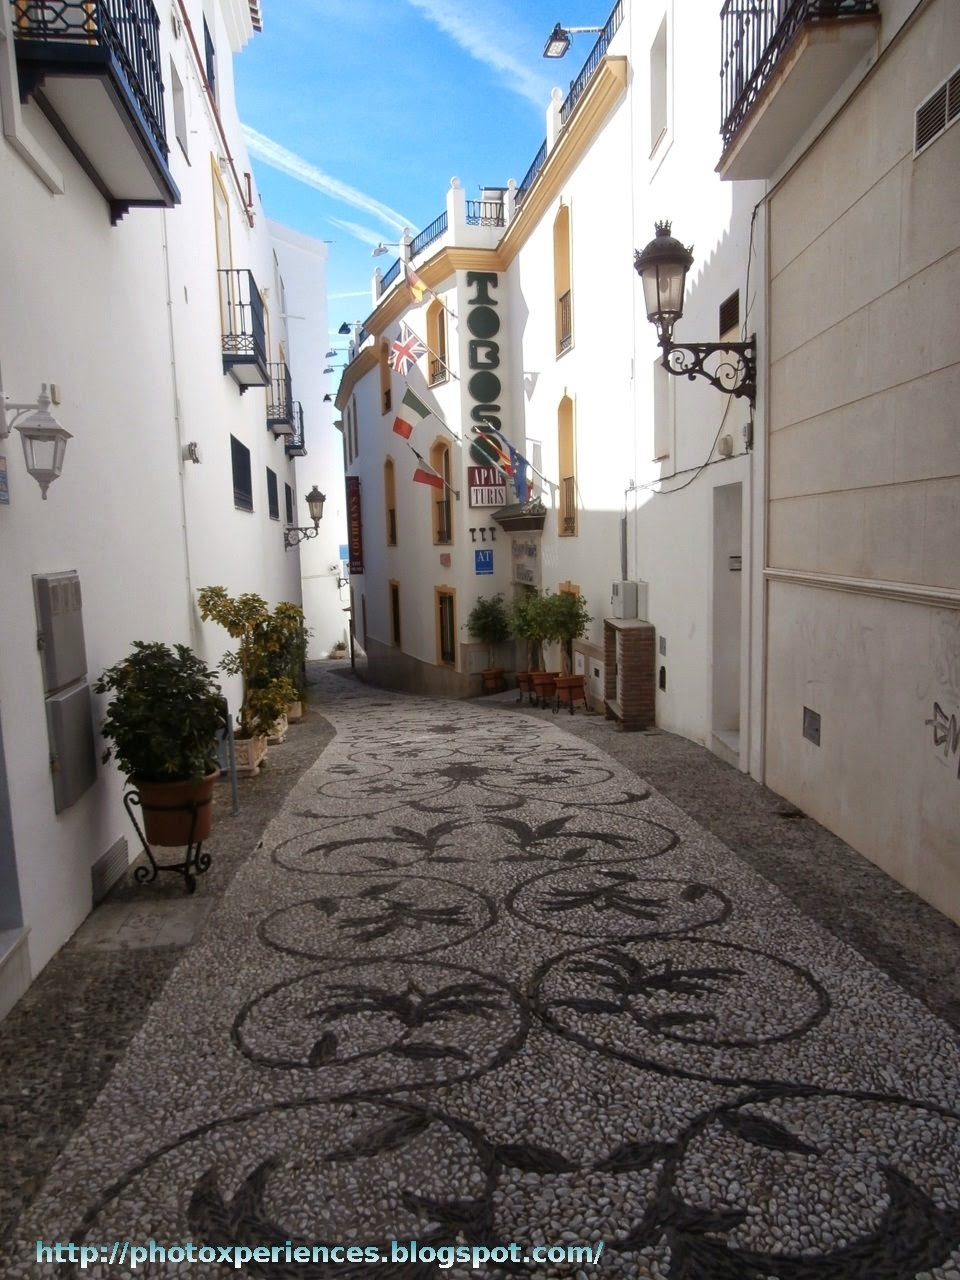 Typical street in the historic center of Nerja. Calle típica del casco histórico de Nerja.